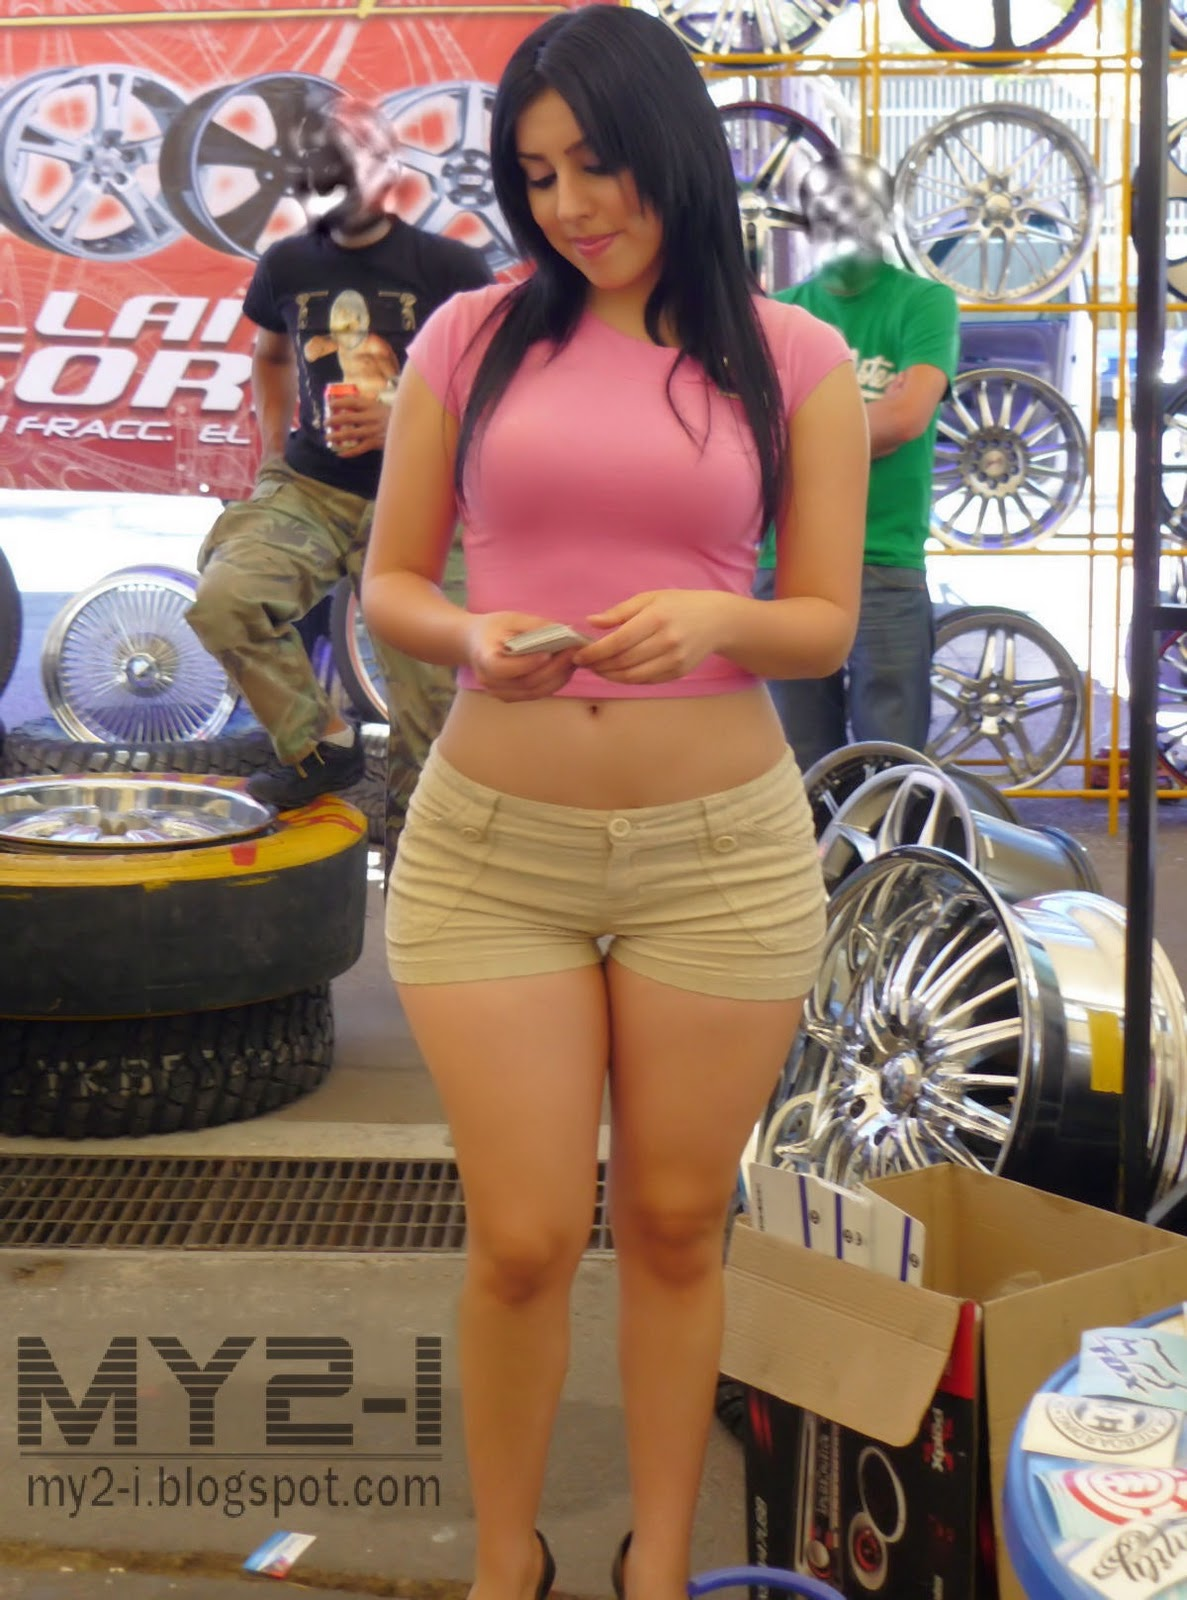 sexy car show babes perky tits, tight asses - gallery | ebaum's world